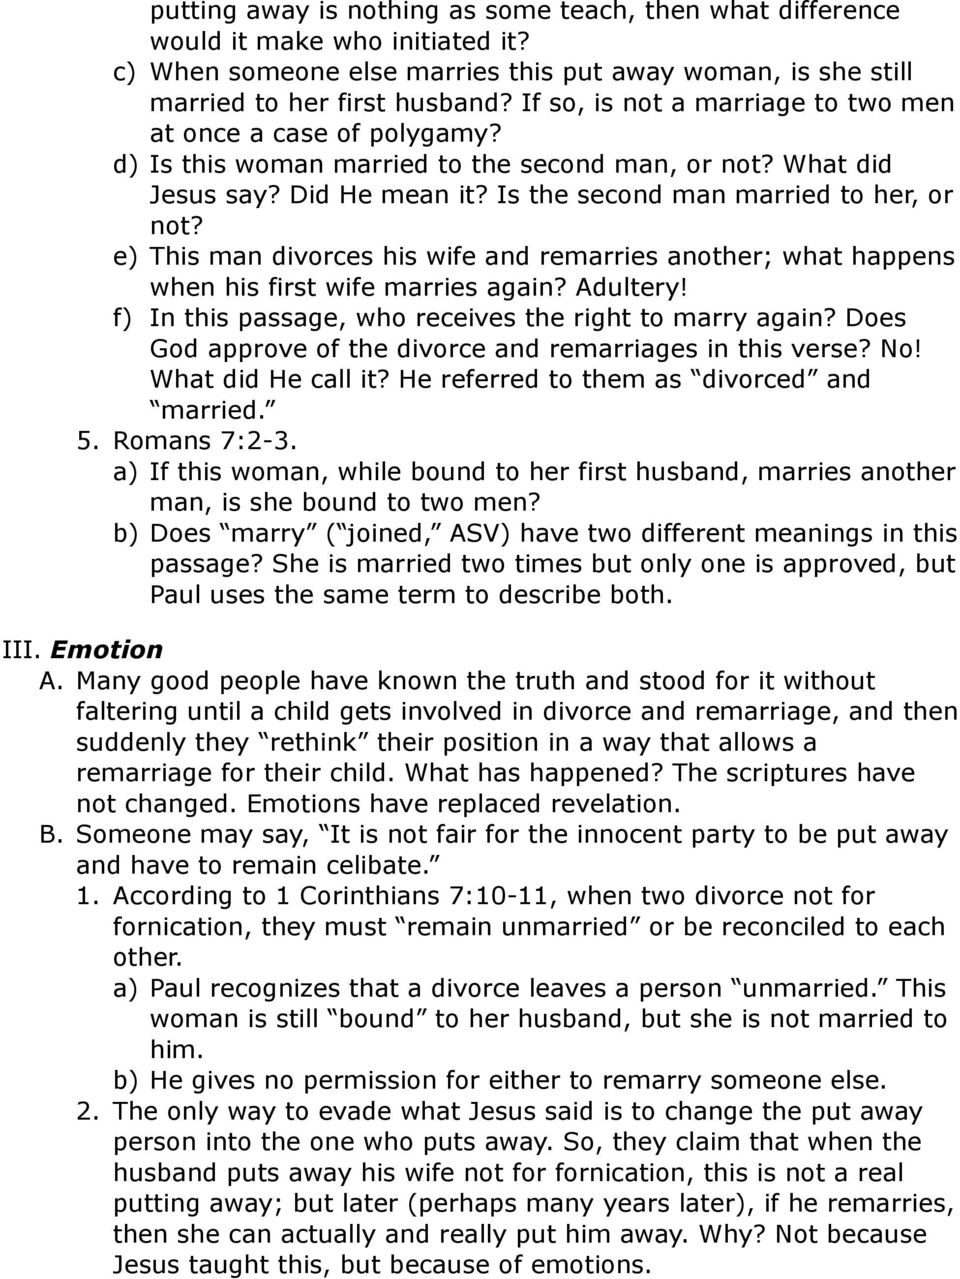 e) This man divorces his wife and remarries another; what happens when his first wife marries again? Adultery! f) In this passage, who receives the right to marry again?